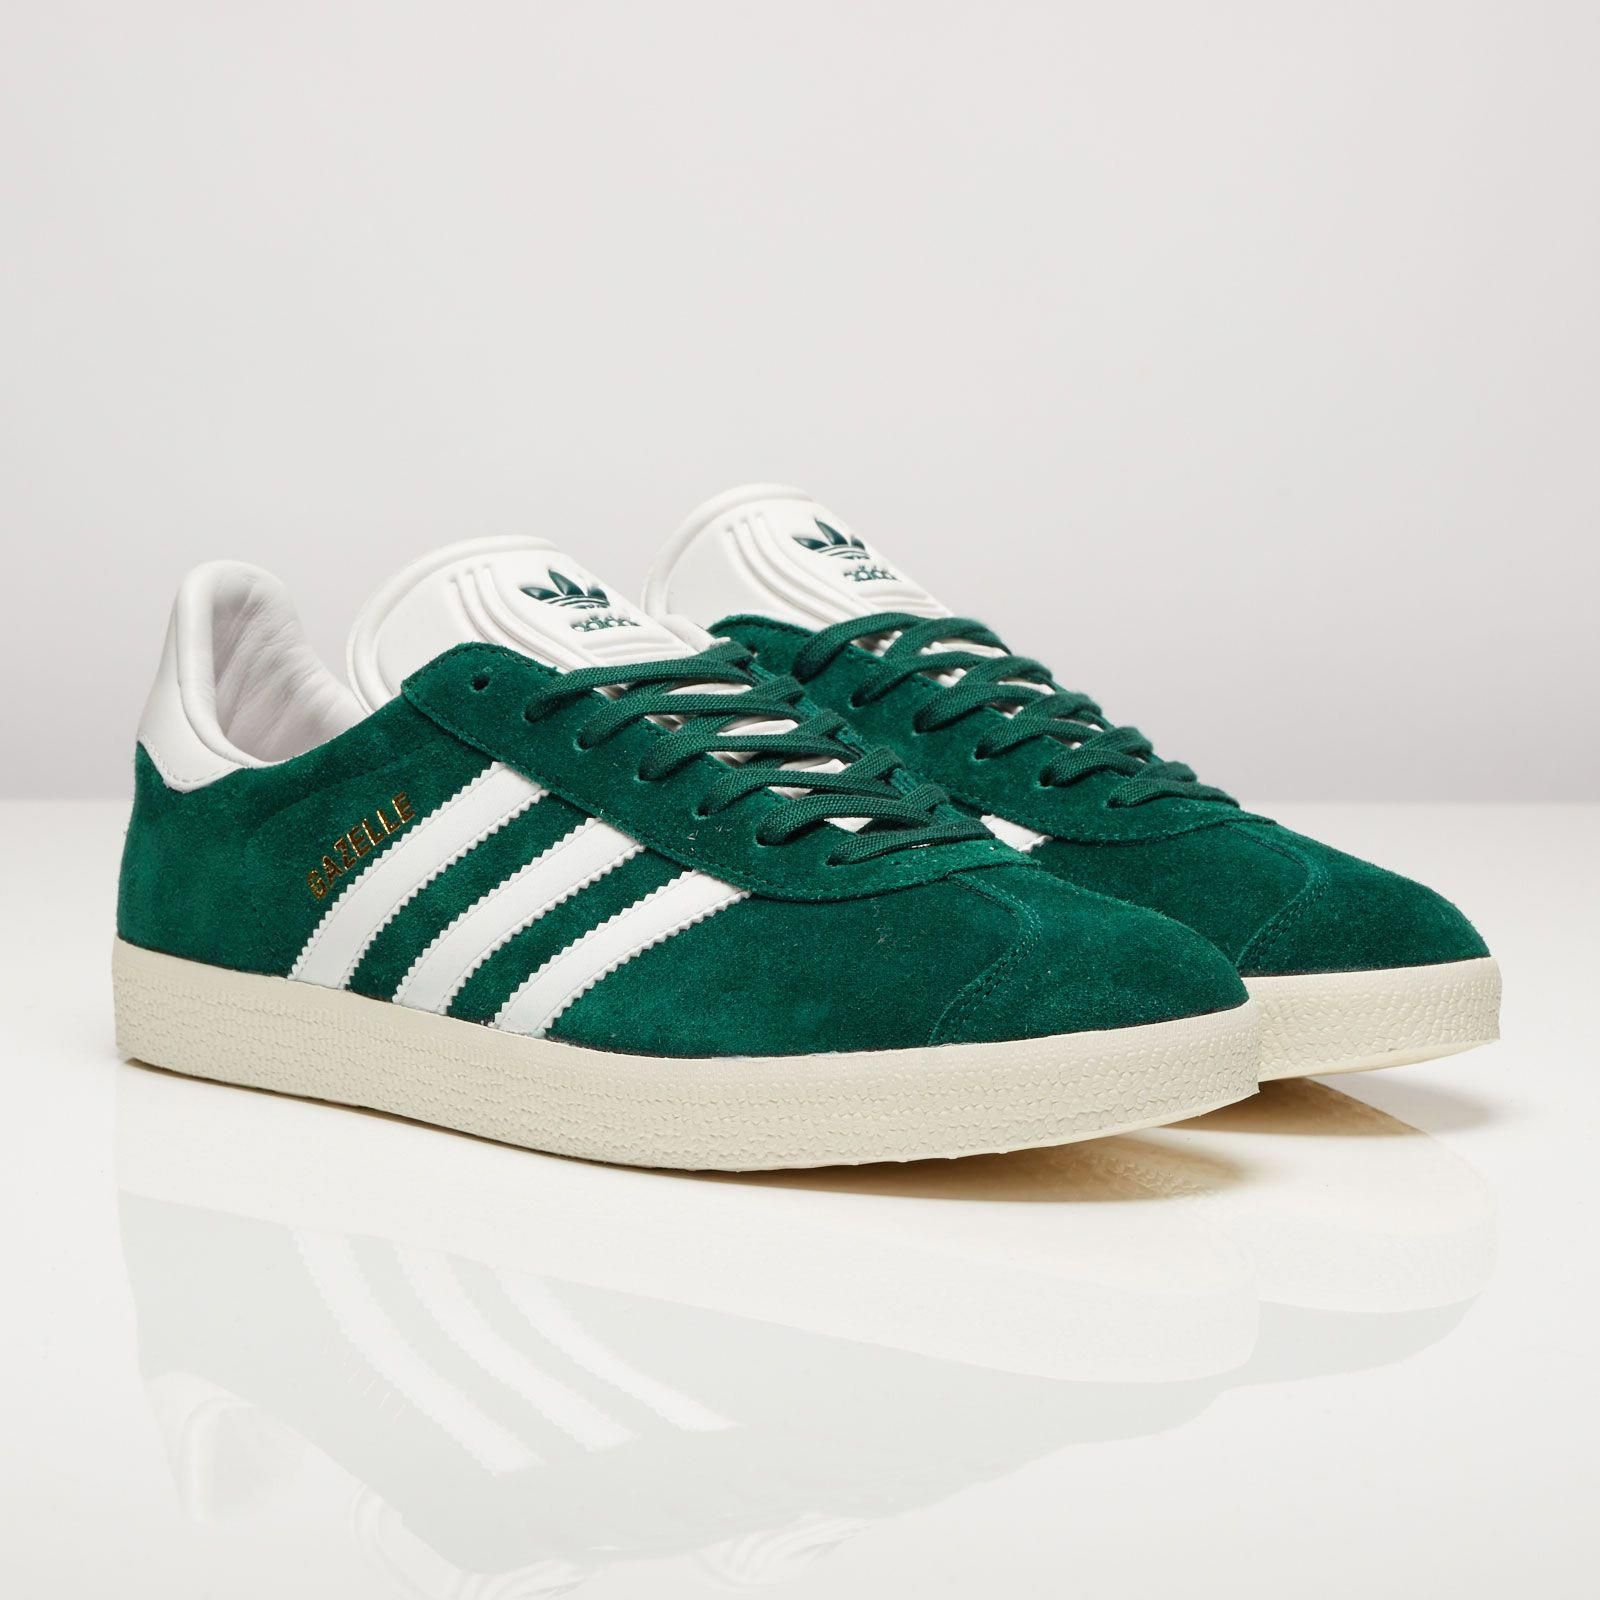 detailed look 50% price best choice adidas Gazelle. Green colorway is most classic. Great warm ...